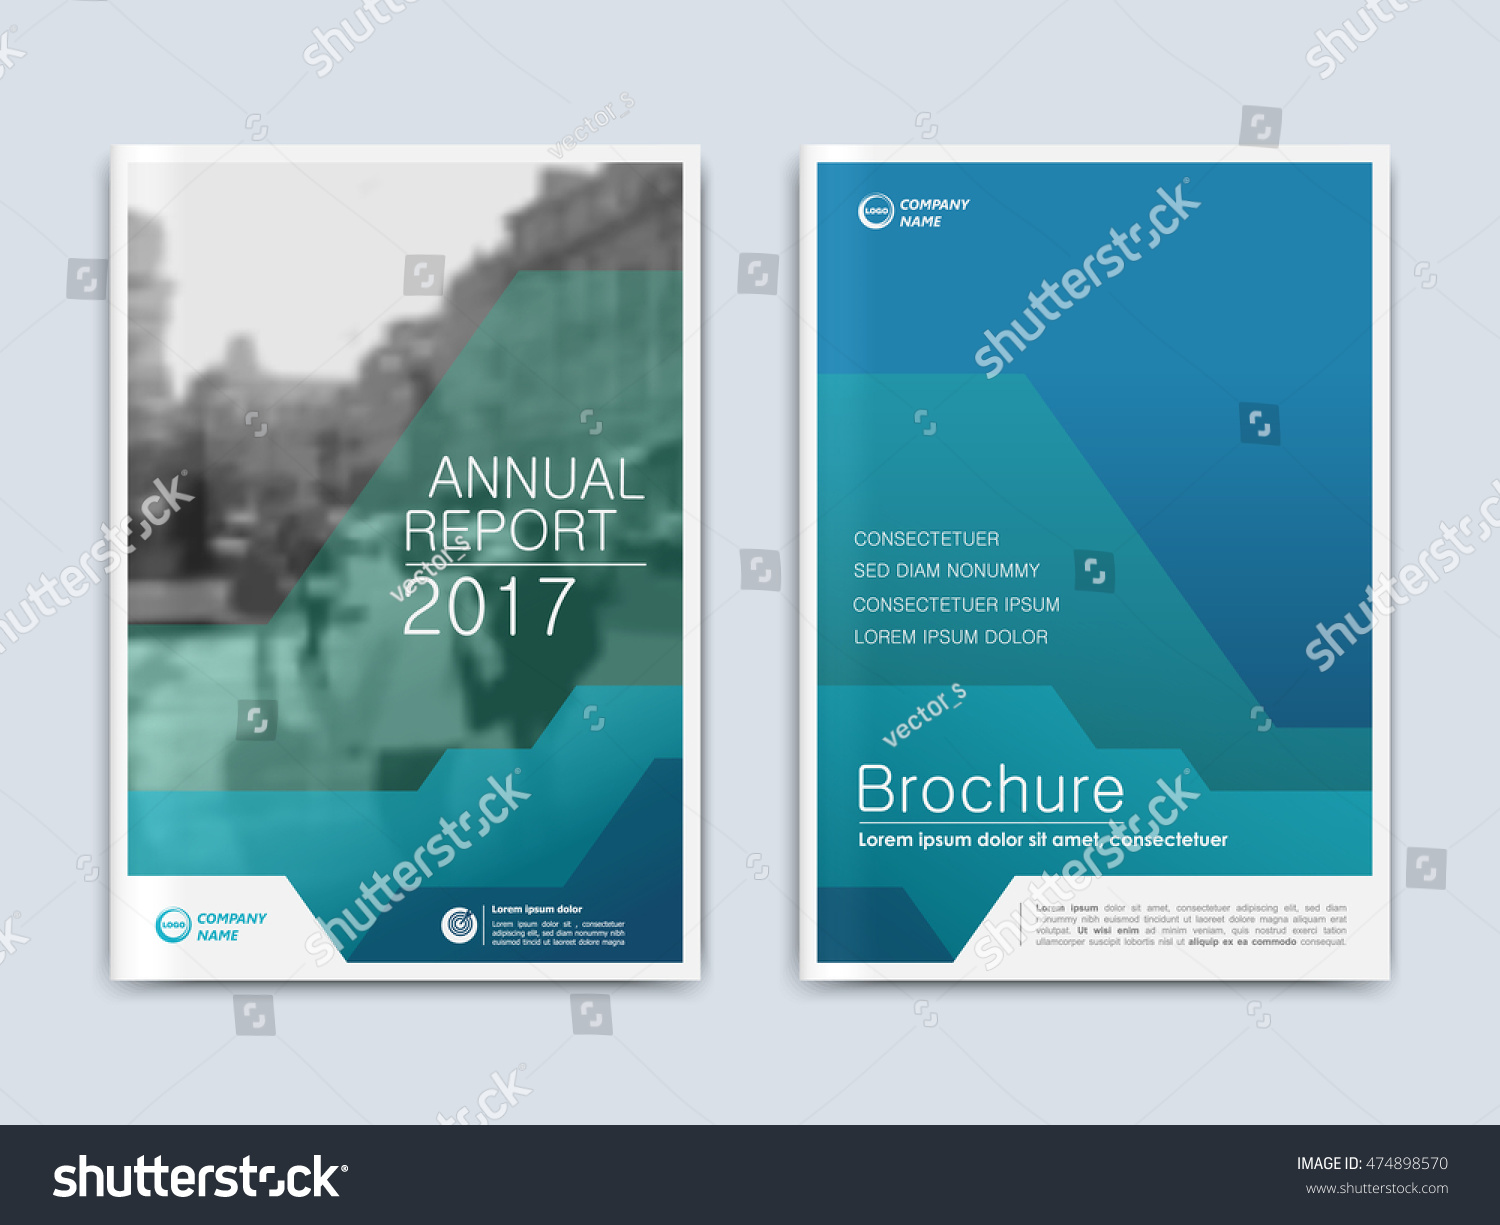 brochure annual report flyer presentation front stock vector brochure annual report flyer presentation front page book cover layout design